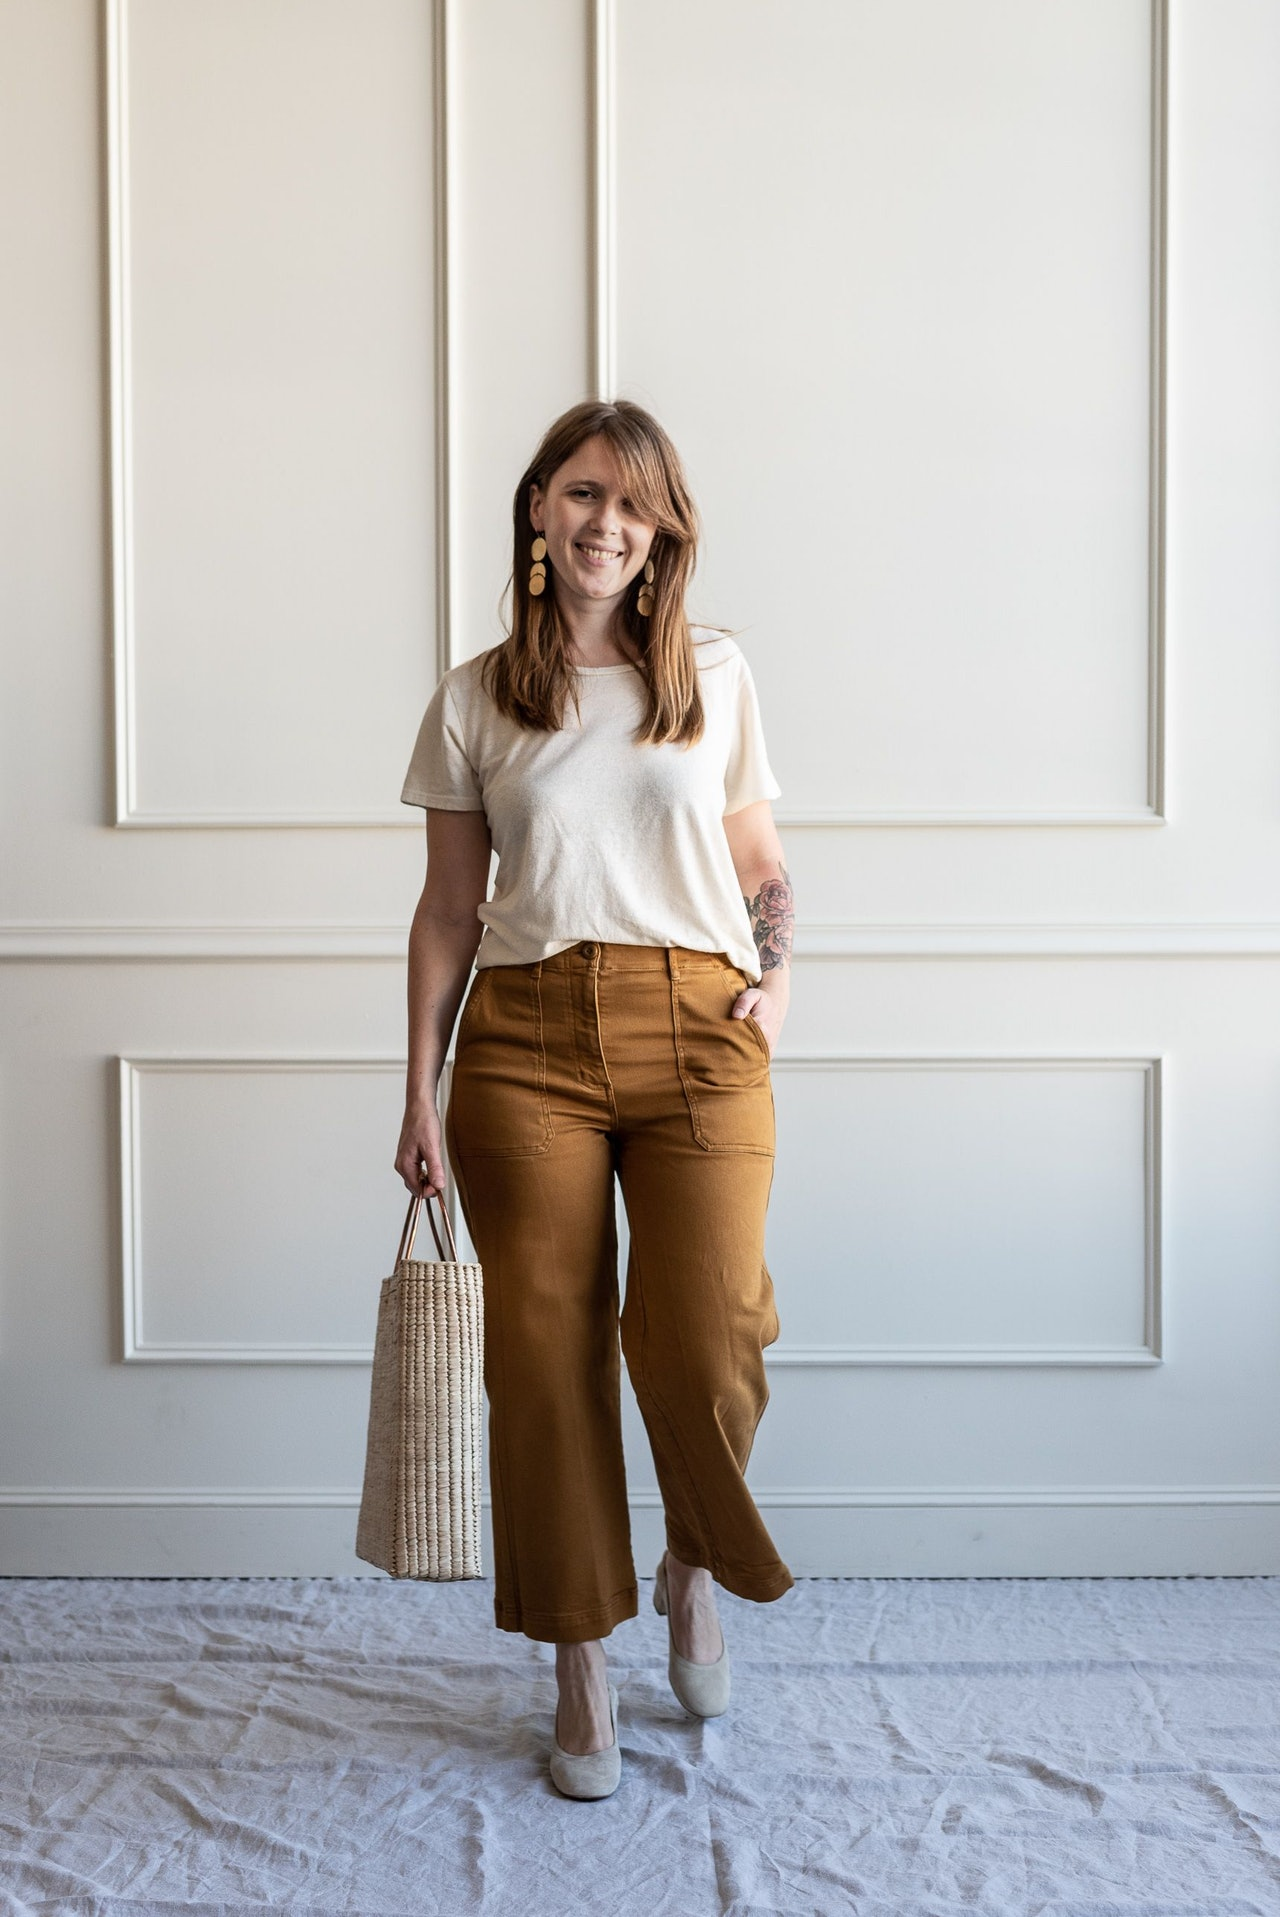 Fall 10x10 Day 1 Look - Everlane Utility Pants in Golden Brown by Conscious by Chloé